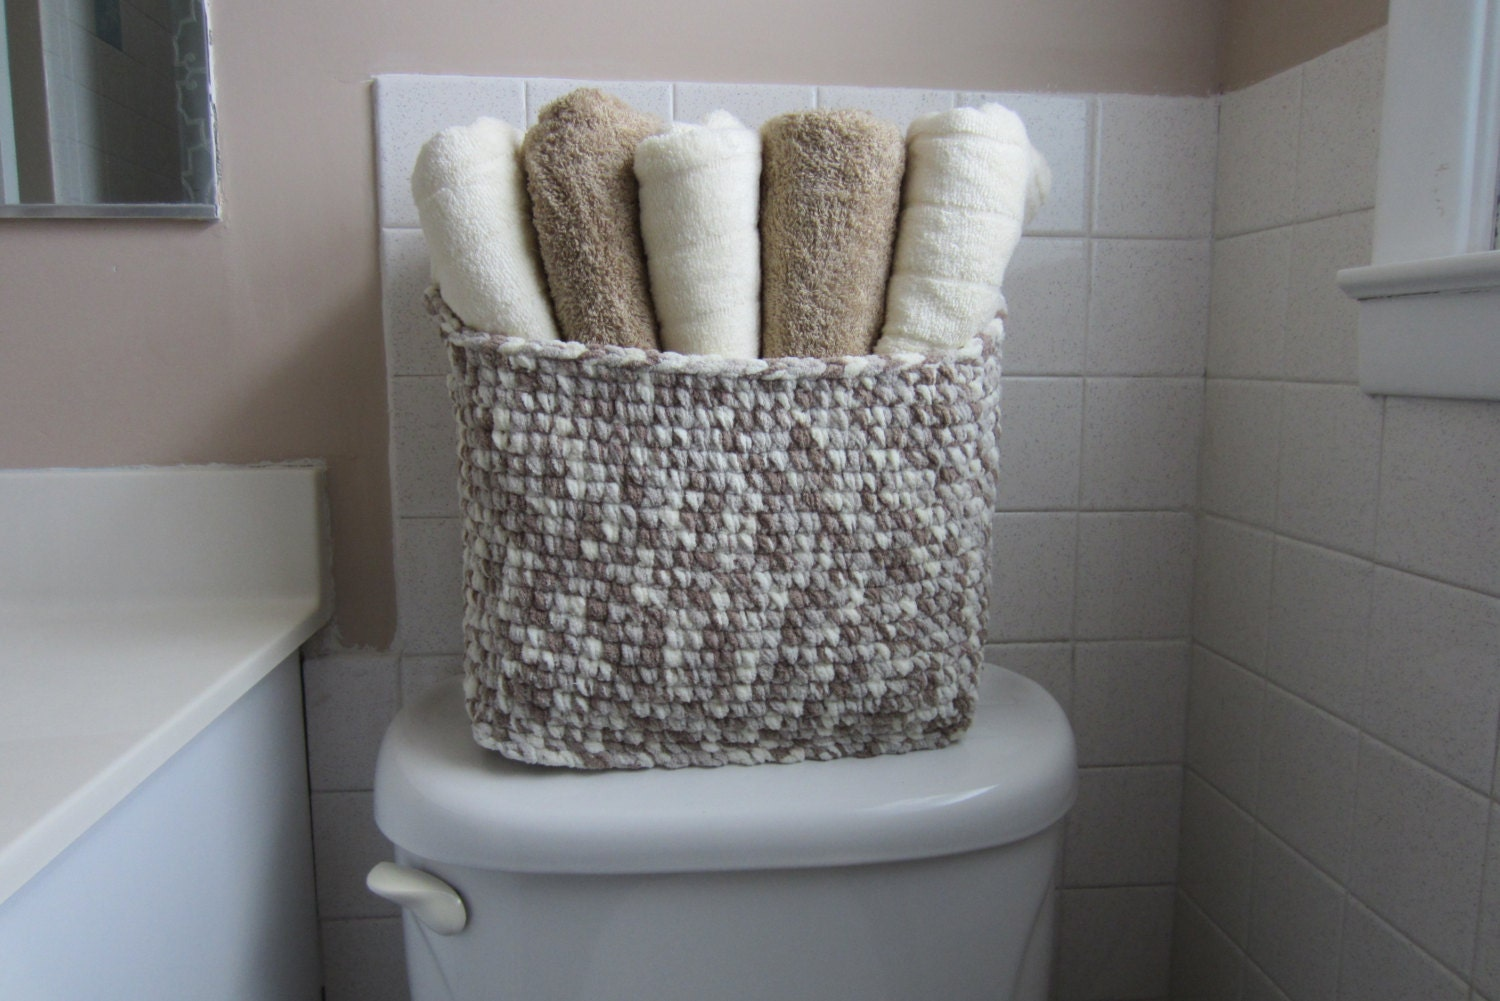 Towel storage basket large bin for bathroom amp toiletries